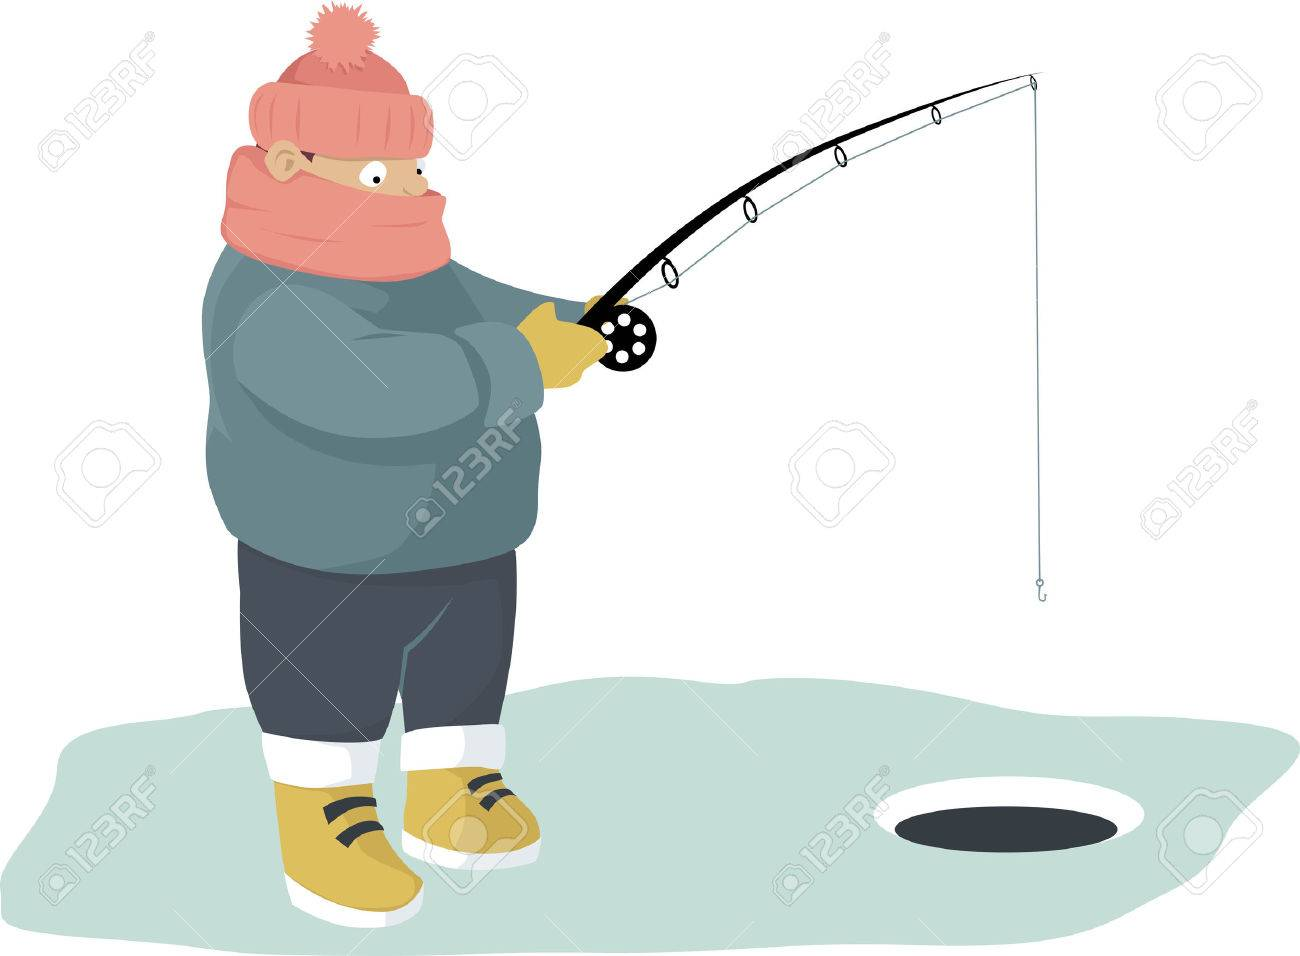 Warmly dressed person ice fishing.